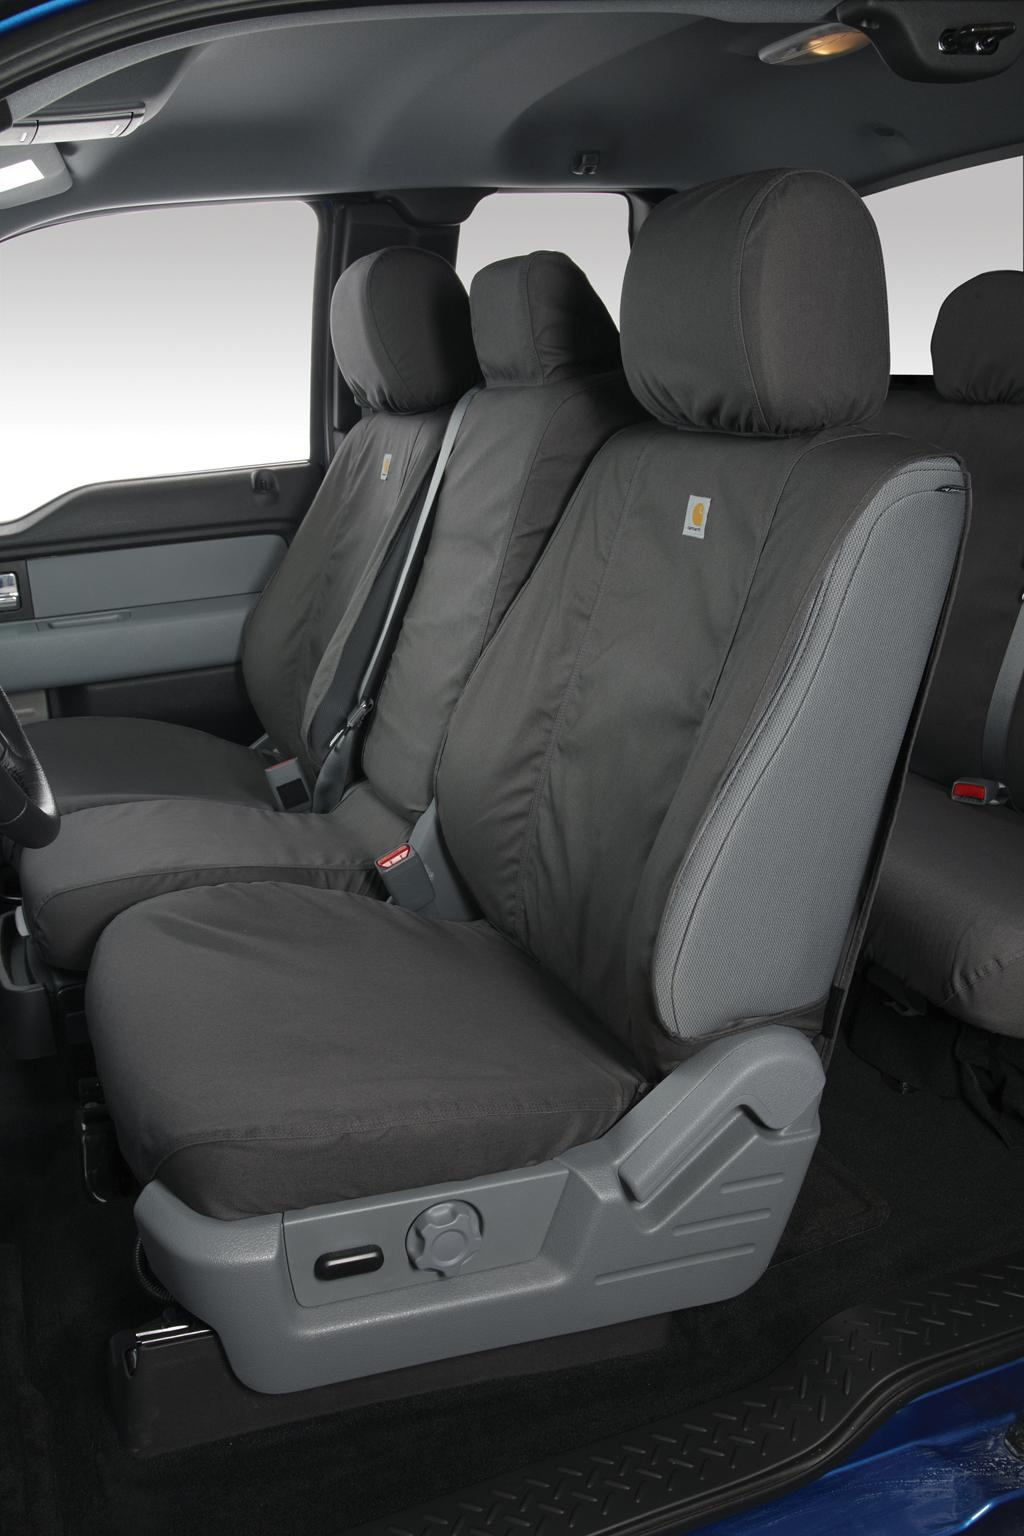 Seat Covers -Front Row, Captains Chair, Gravel